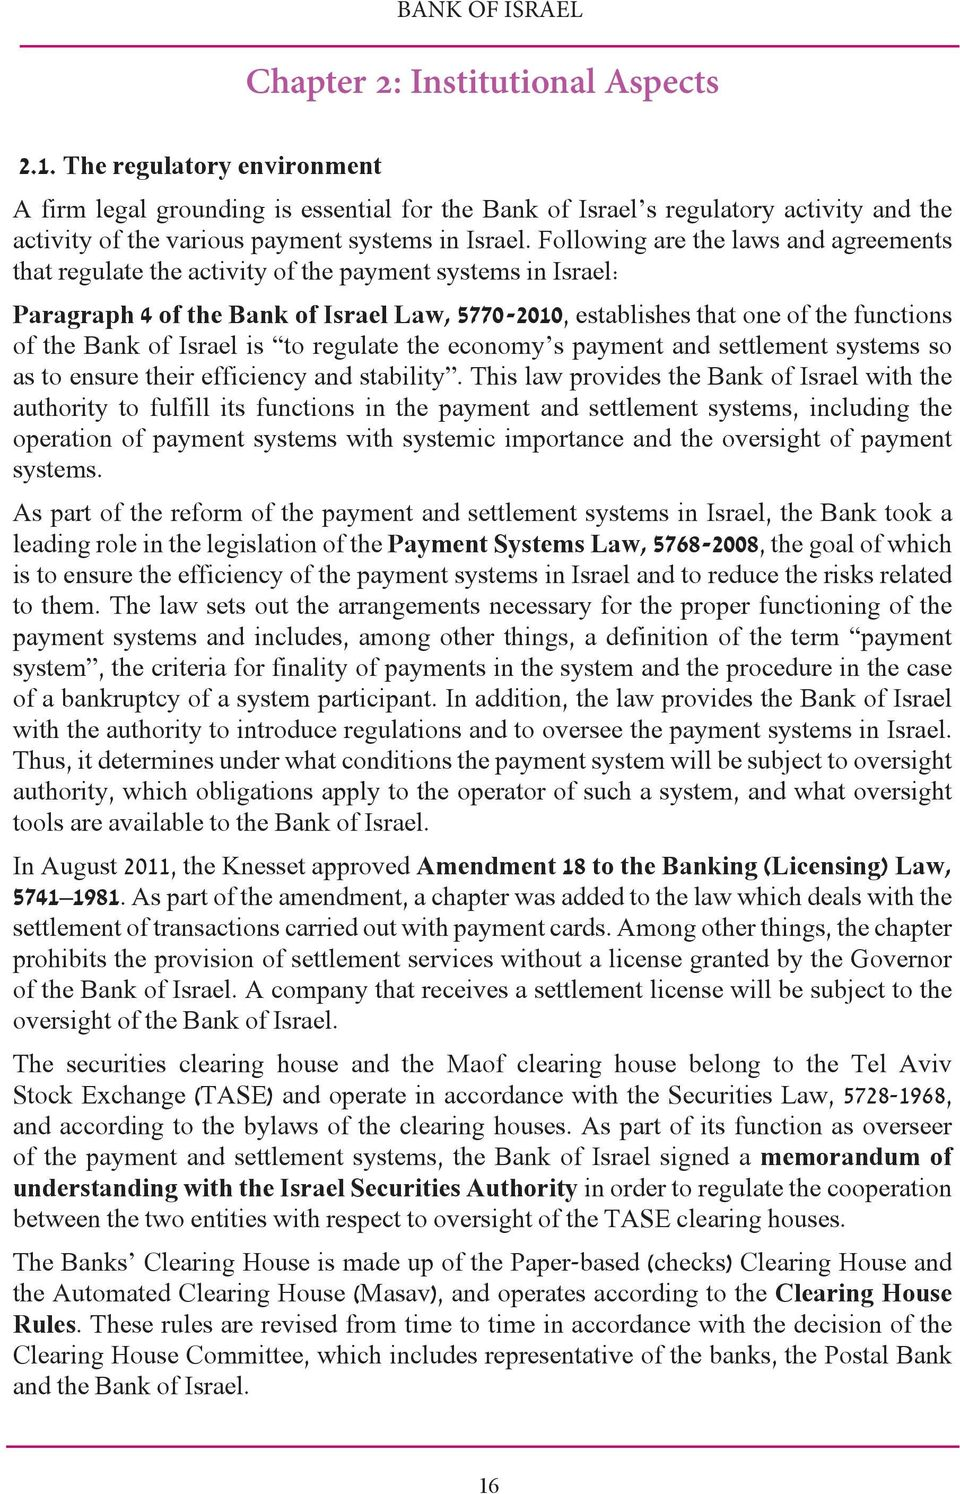 Following are the laws and agreements that regulate the activity of the payment systems in Israel: Paragraph 4 of the Bank of Israel Law, 5770-2010, establishes that one of the functions of the Bank